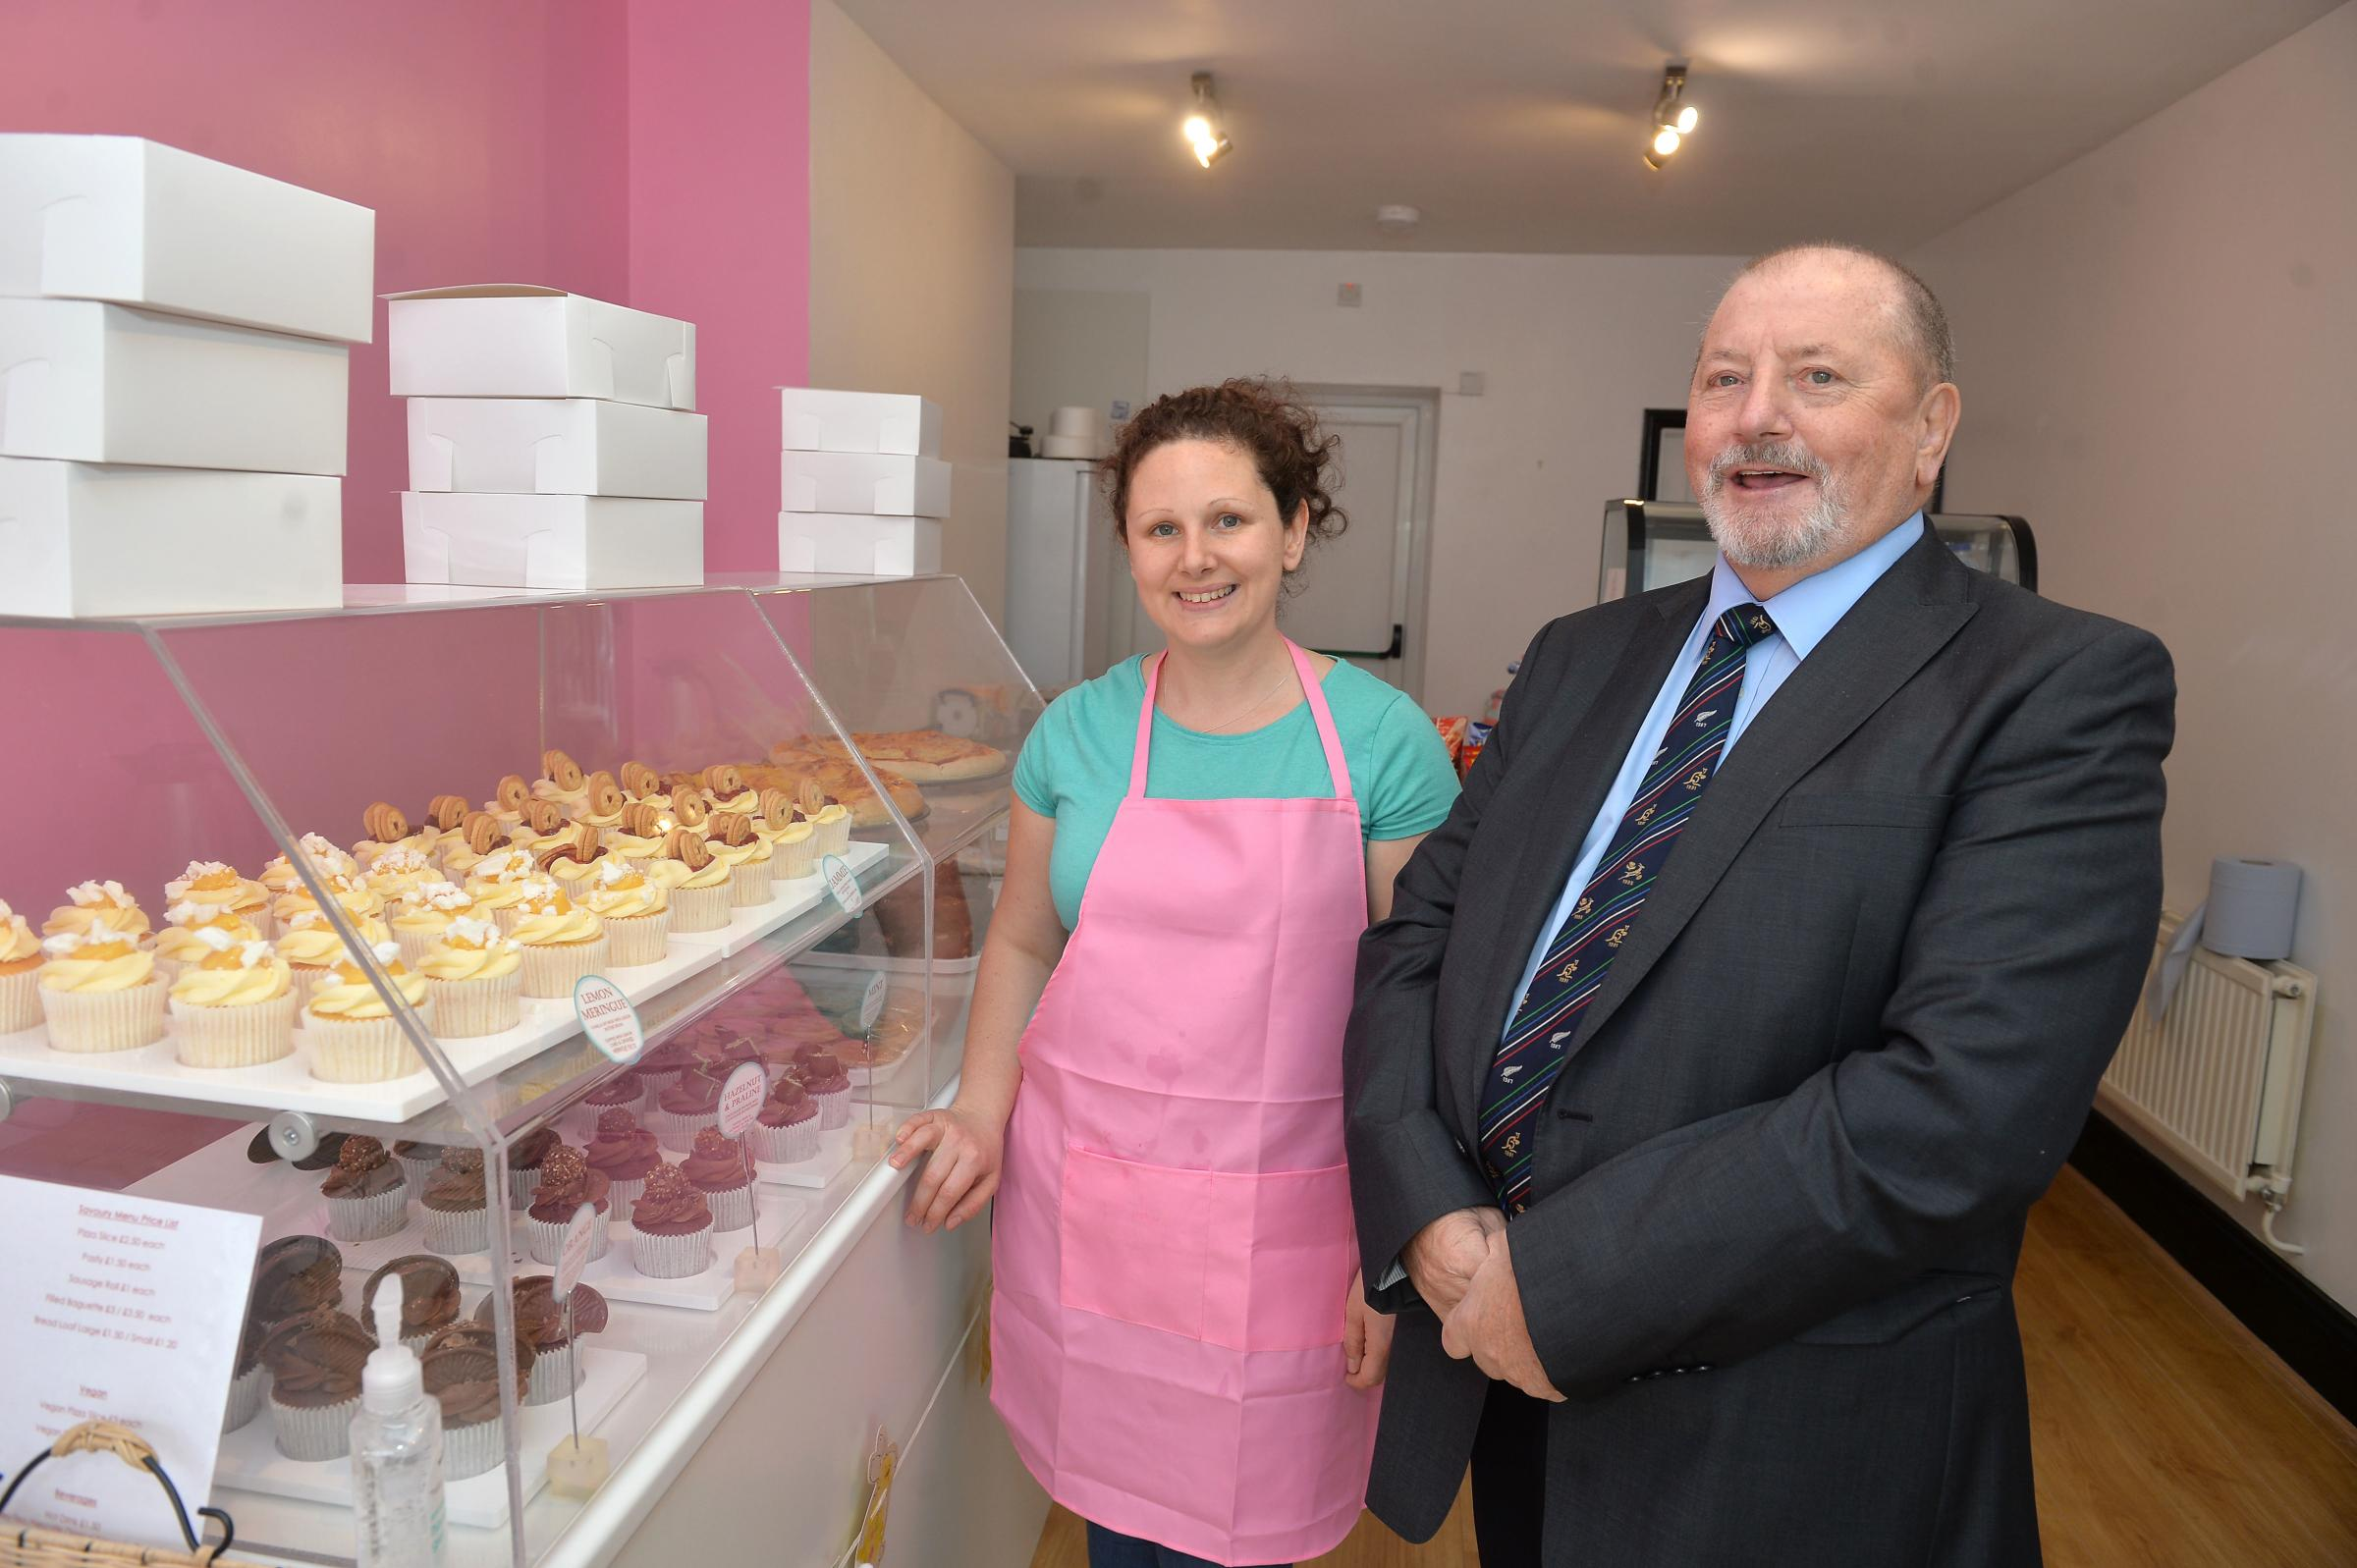 Cllr Alan Jones opens The Flour Girls bakery and cake shop with owner Rhian O'Connell in Blaenavon .  www.christinsleyphotography.co.uk